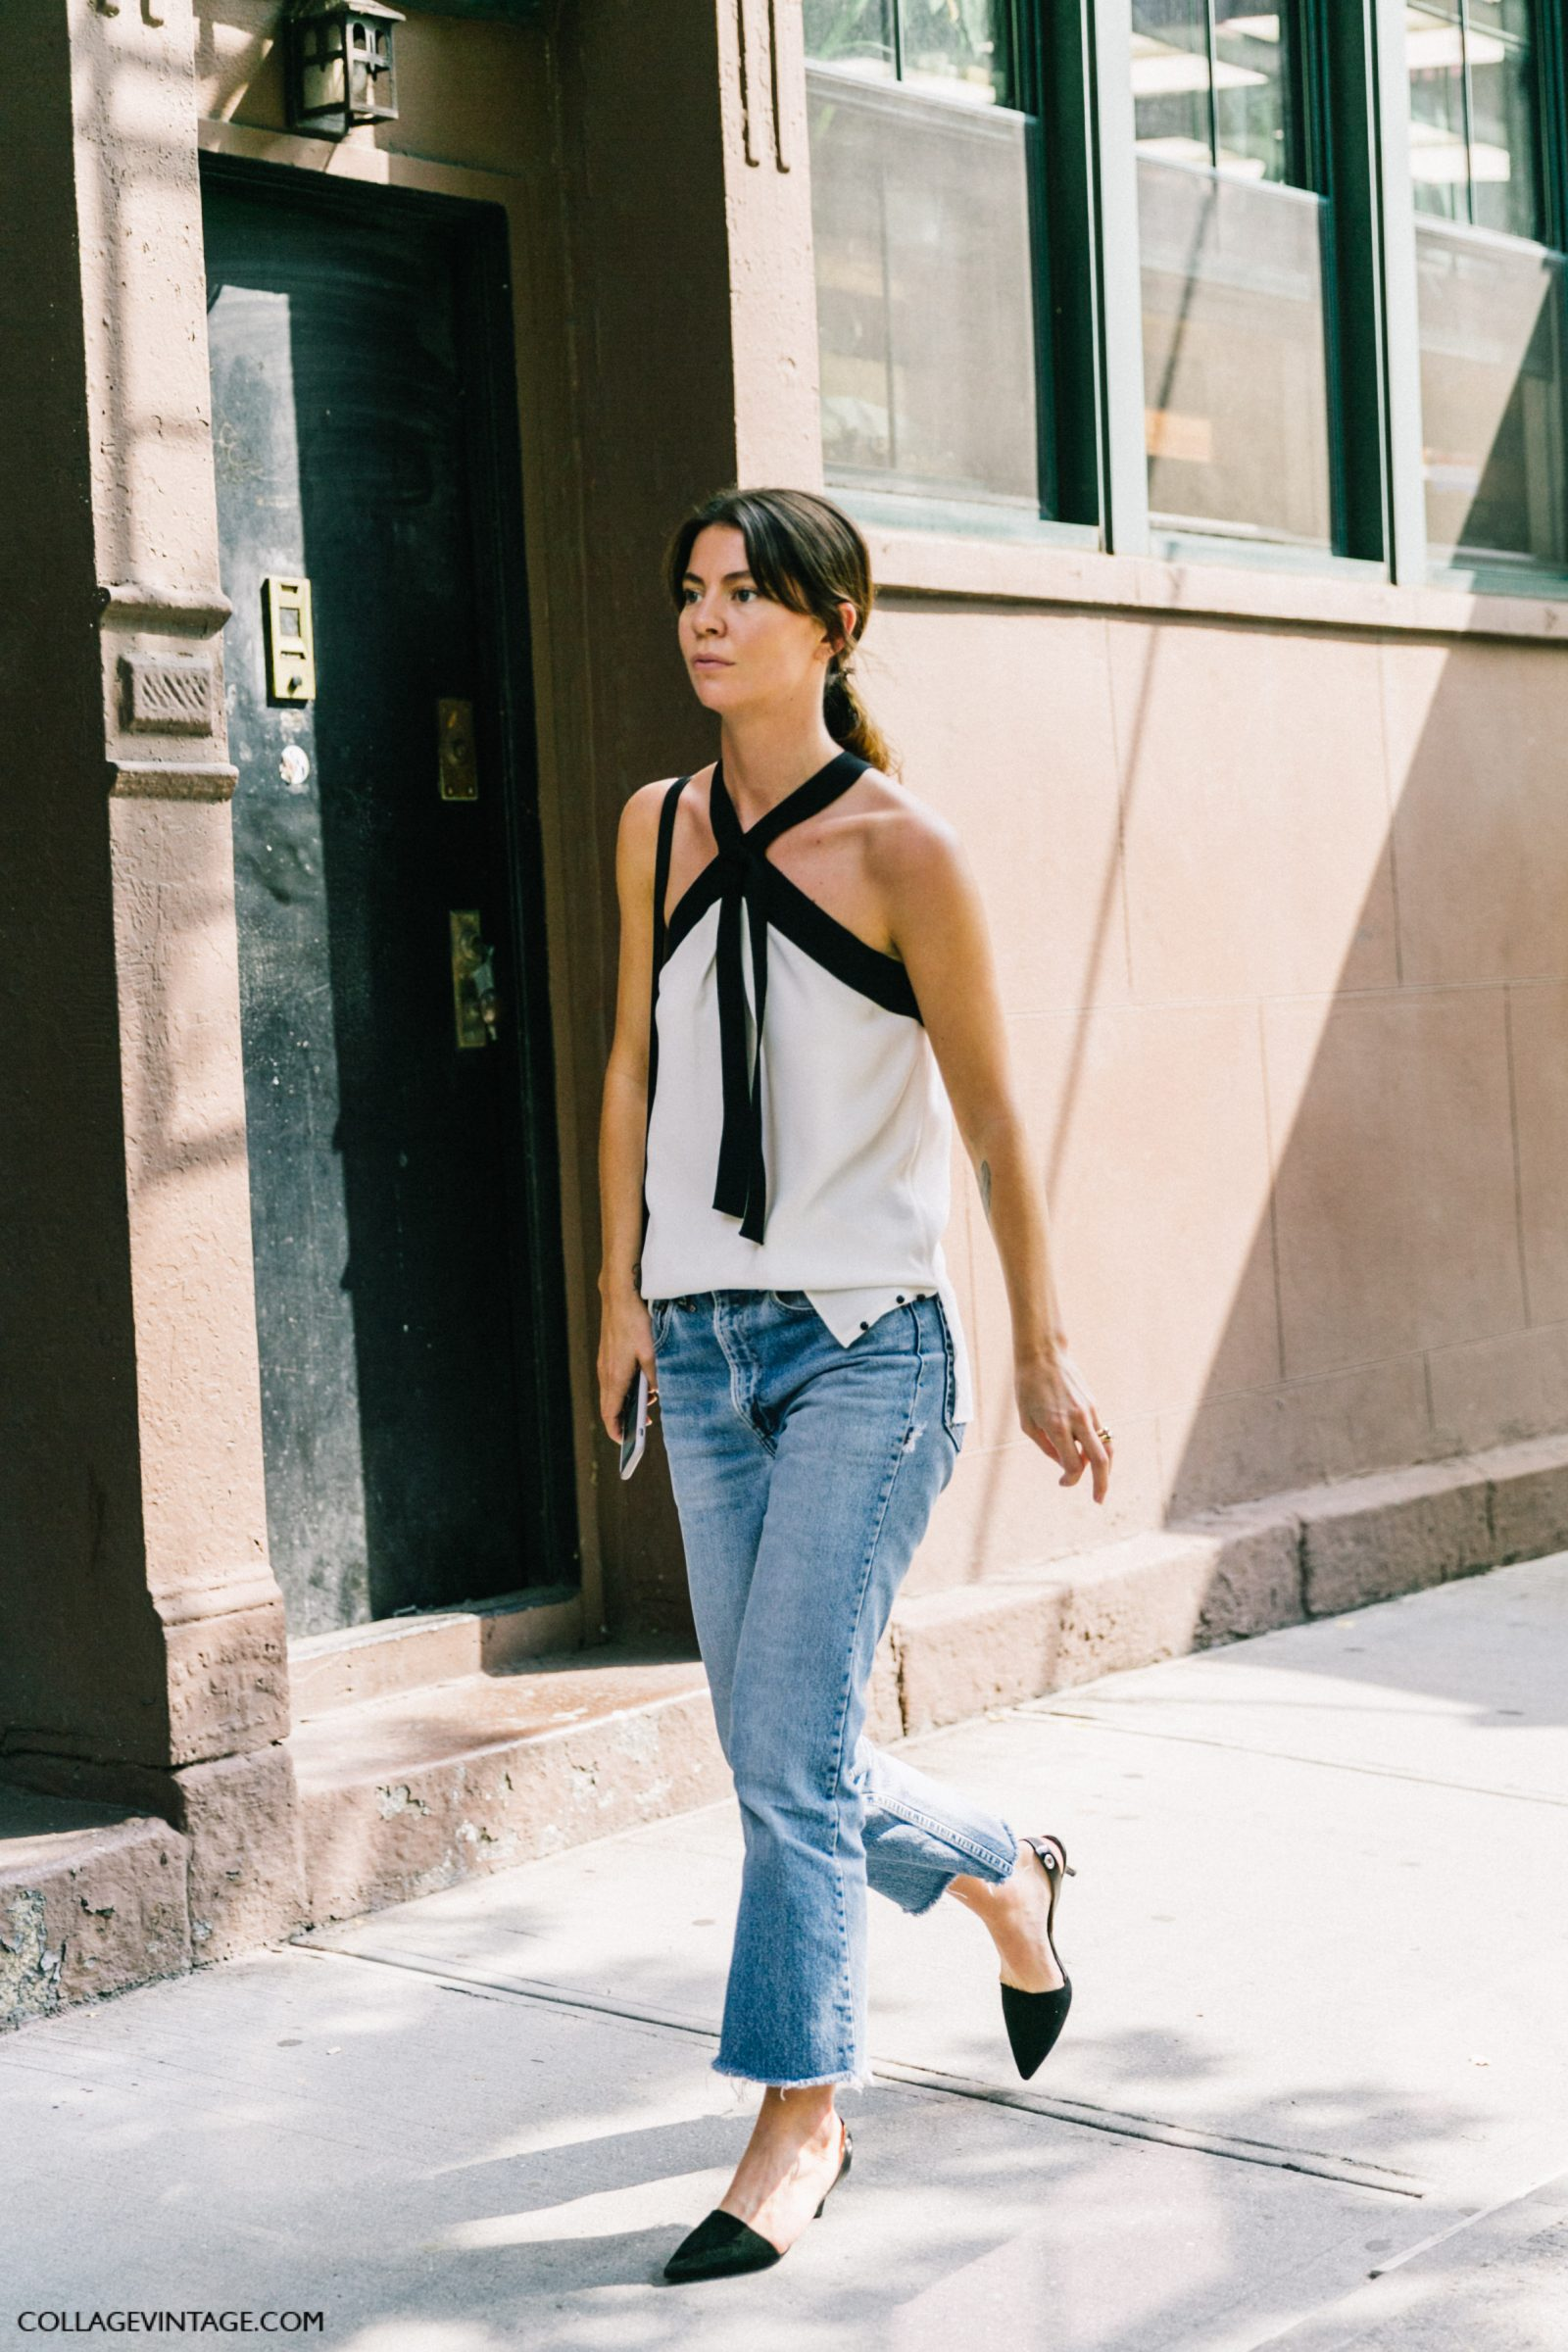 nyfw-new_york_fashion_week_ss17-street_style-outfits-collage_vintage-31